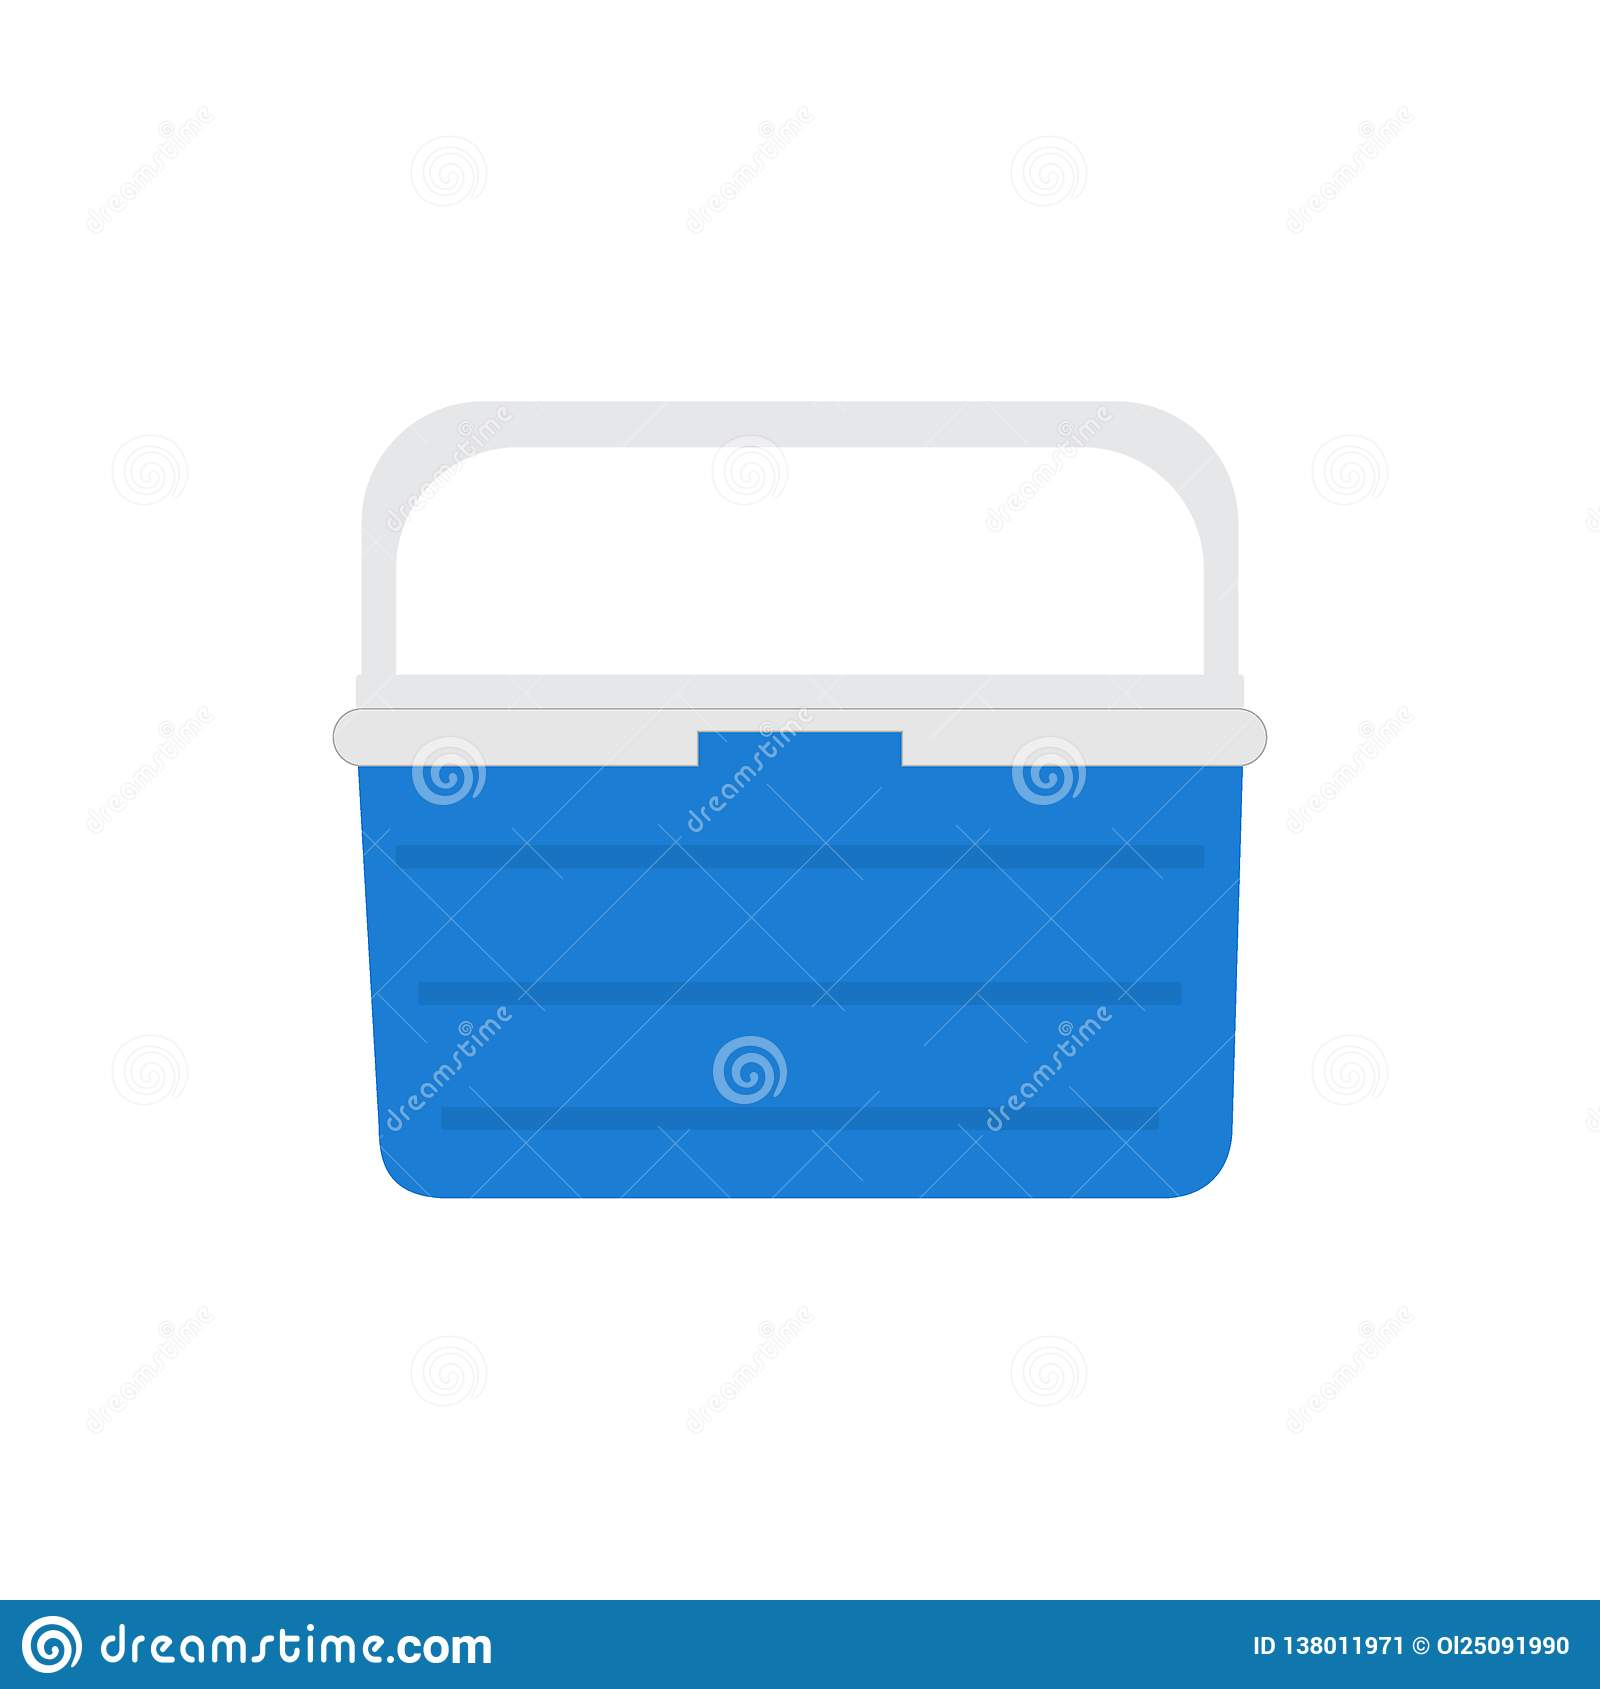 42134a2d0dfb Handheld Blue Refrigerator, Ice Cooler For Picnic Or Camping. Vector ...